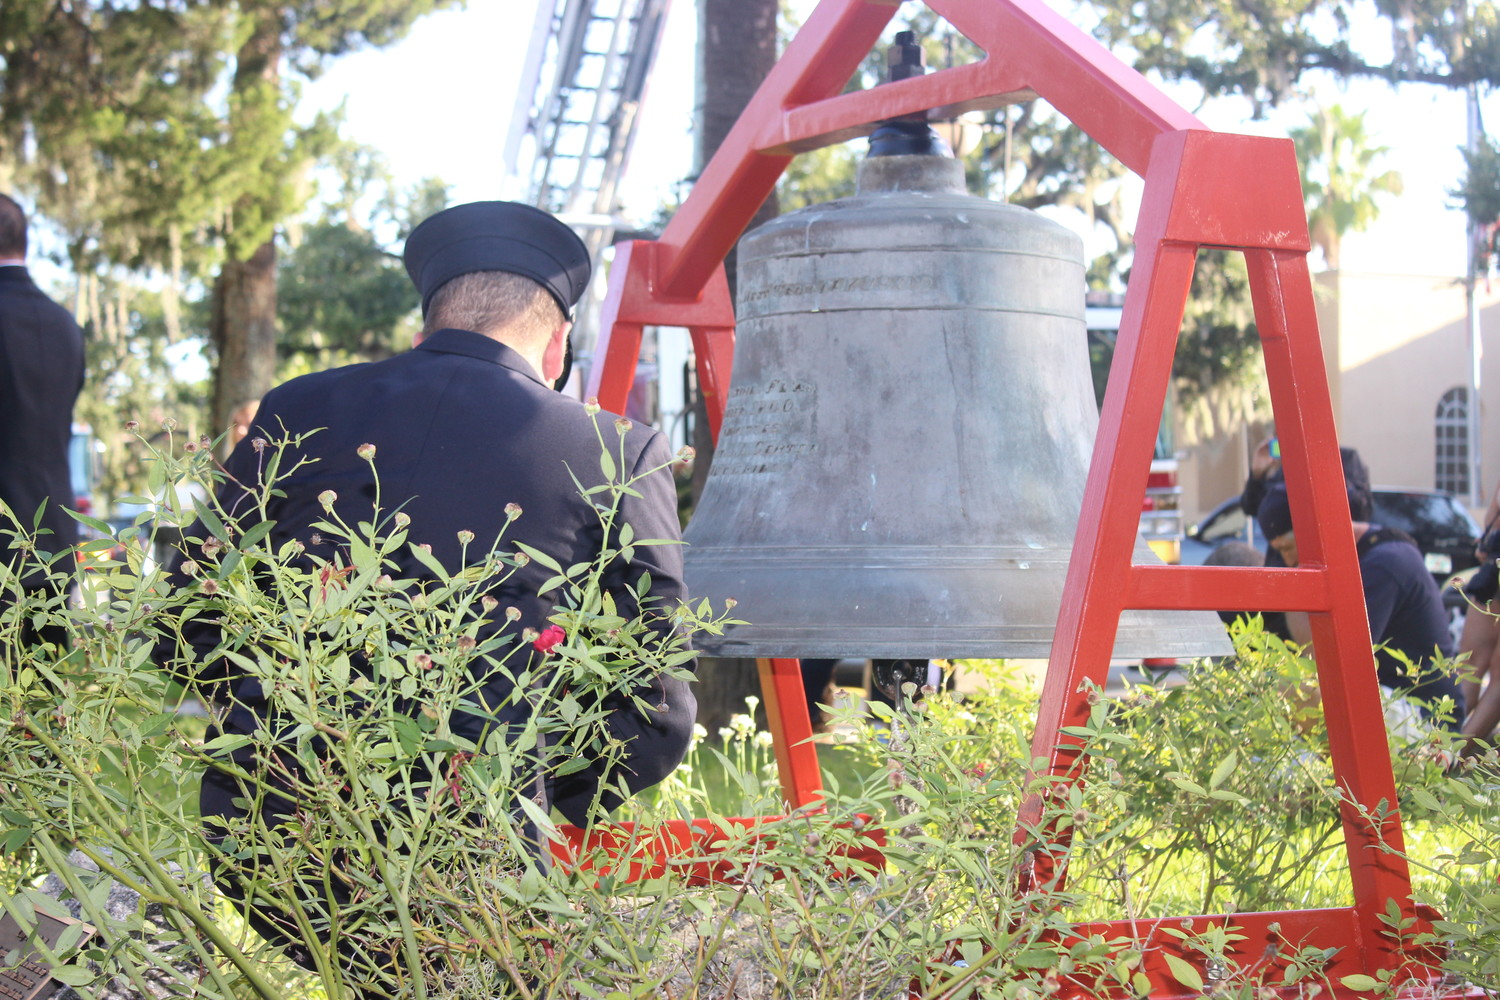 A firefighter with the St. Augustine Fire Department rings a historic bell to honor the first responders and civilians who lost their lives on 9/11.